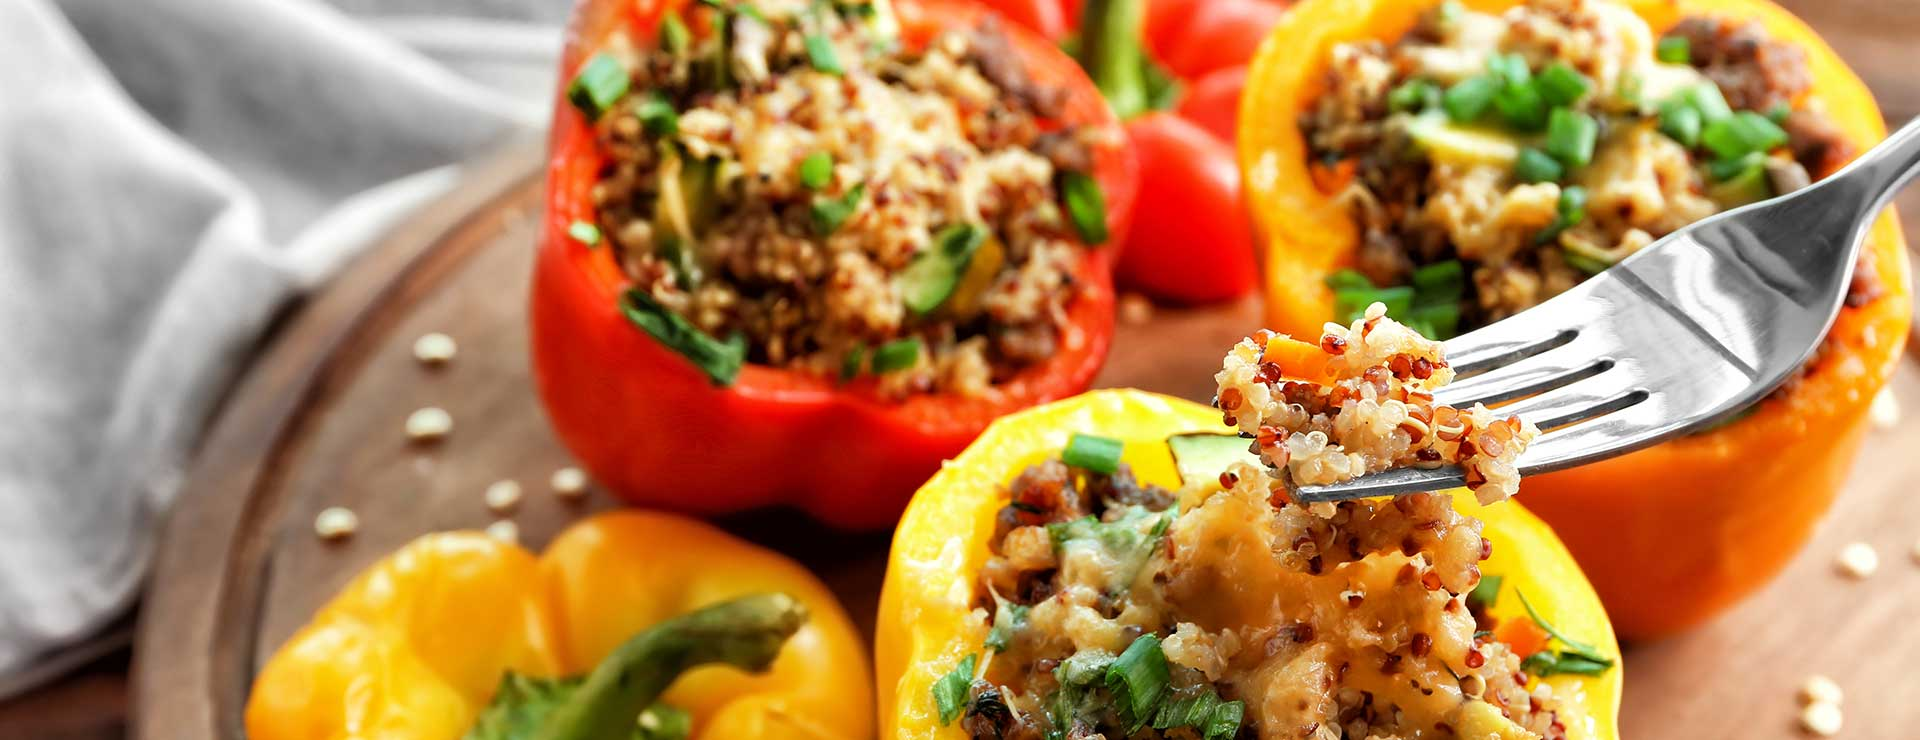 A tray of stuffed peppers.